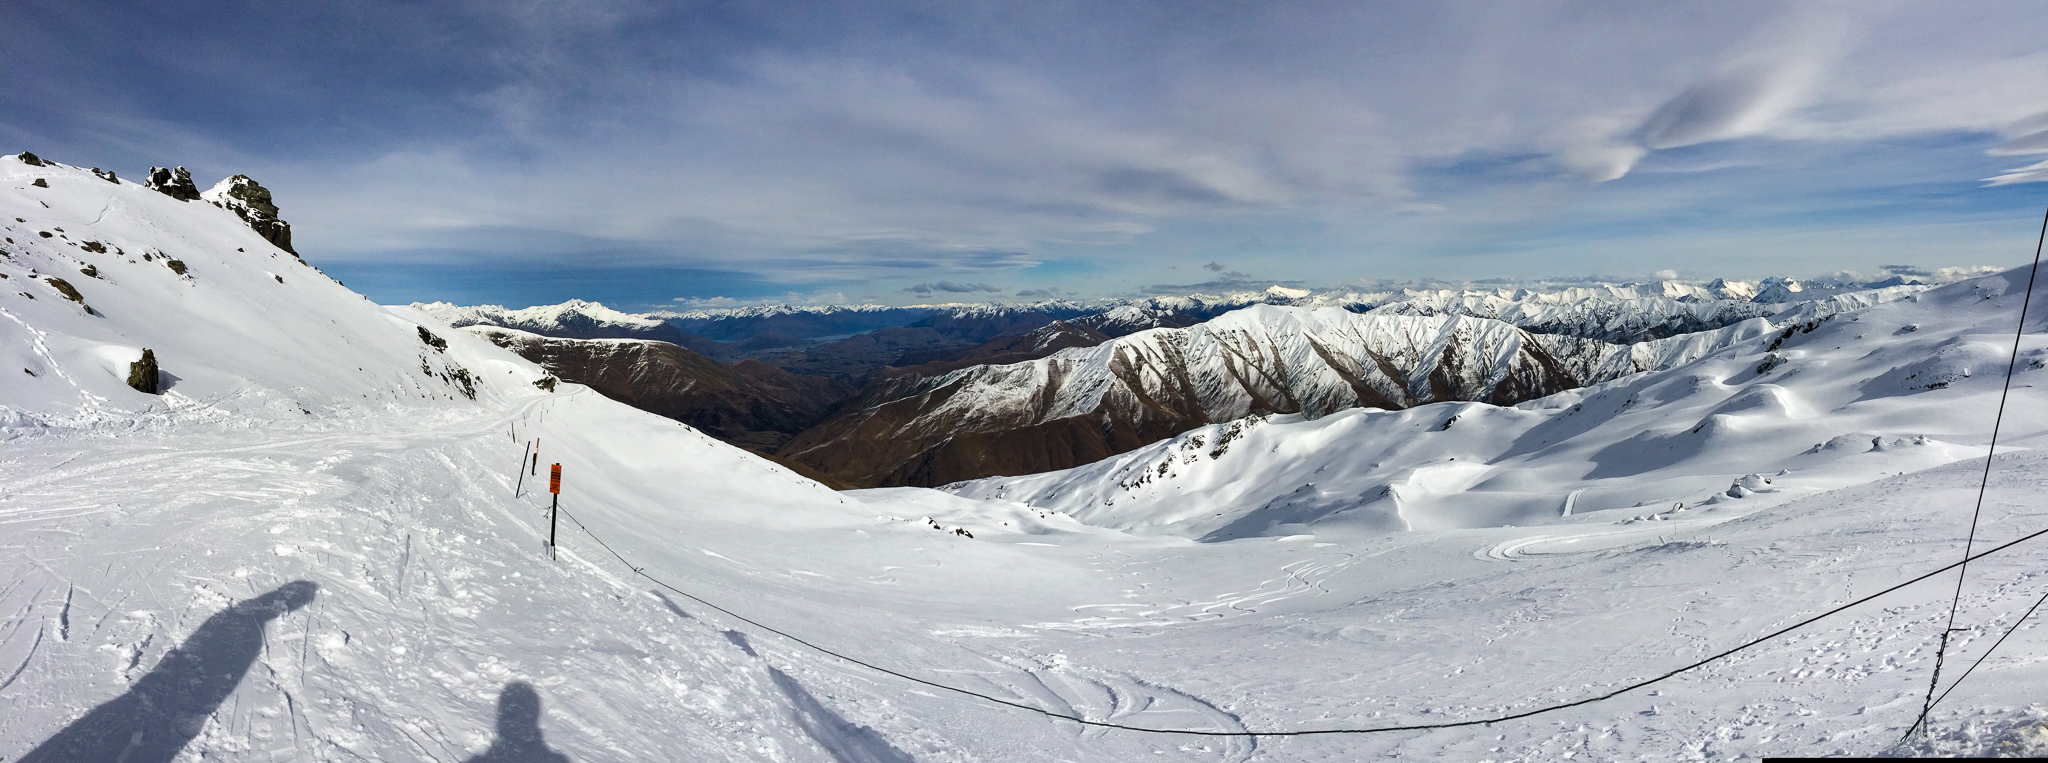 Cardrona Alpine Resort from the top